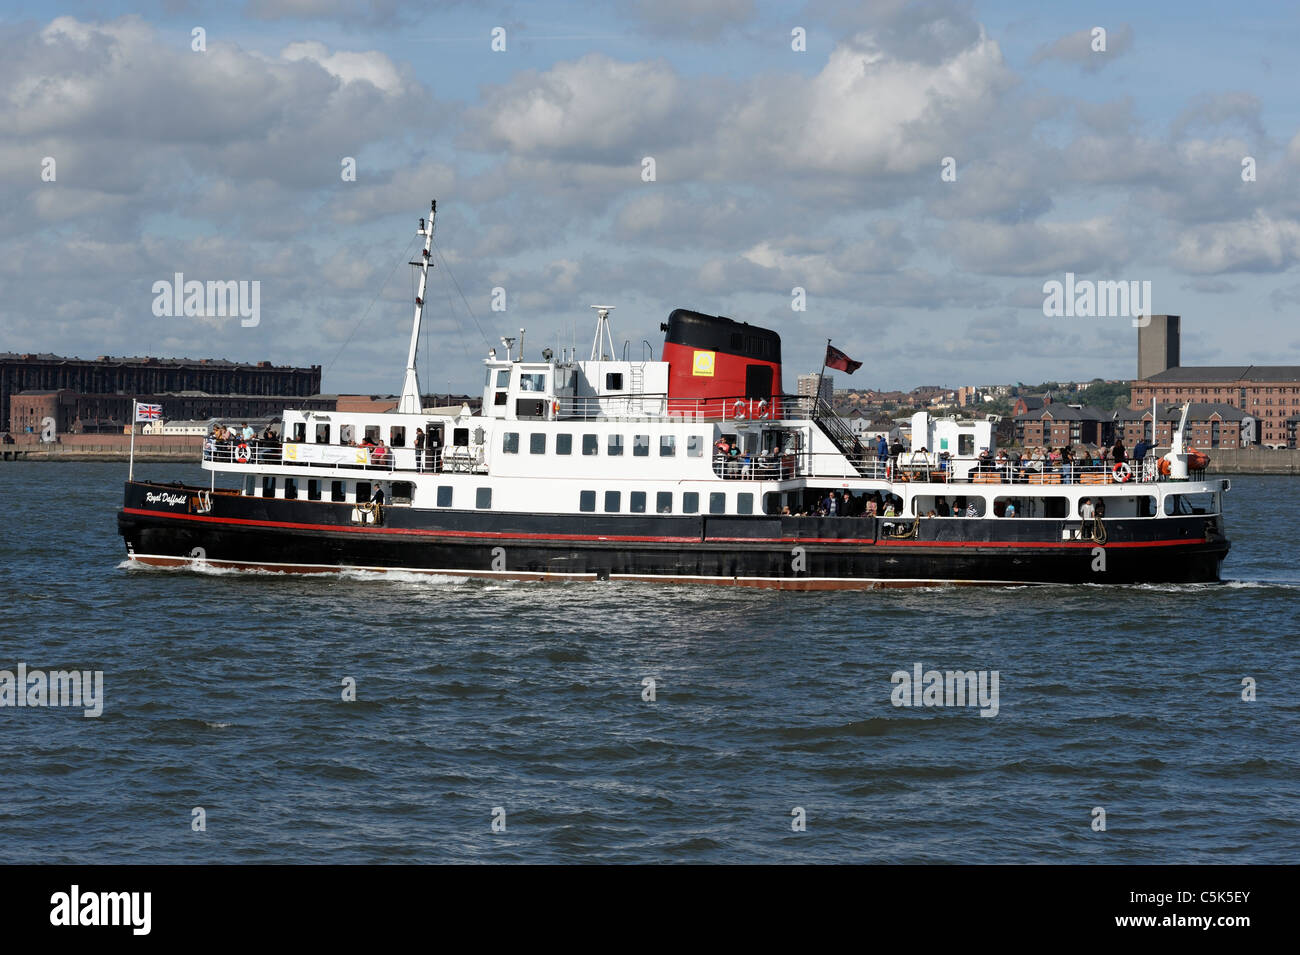 Passenger ferry crossing the River Mersey near Seacombe Ferry Terminal - Stock Image